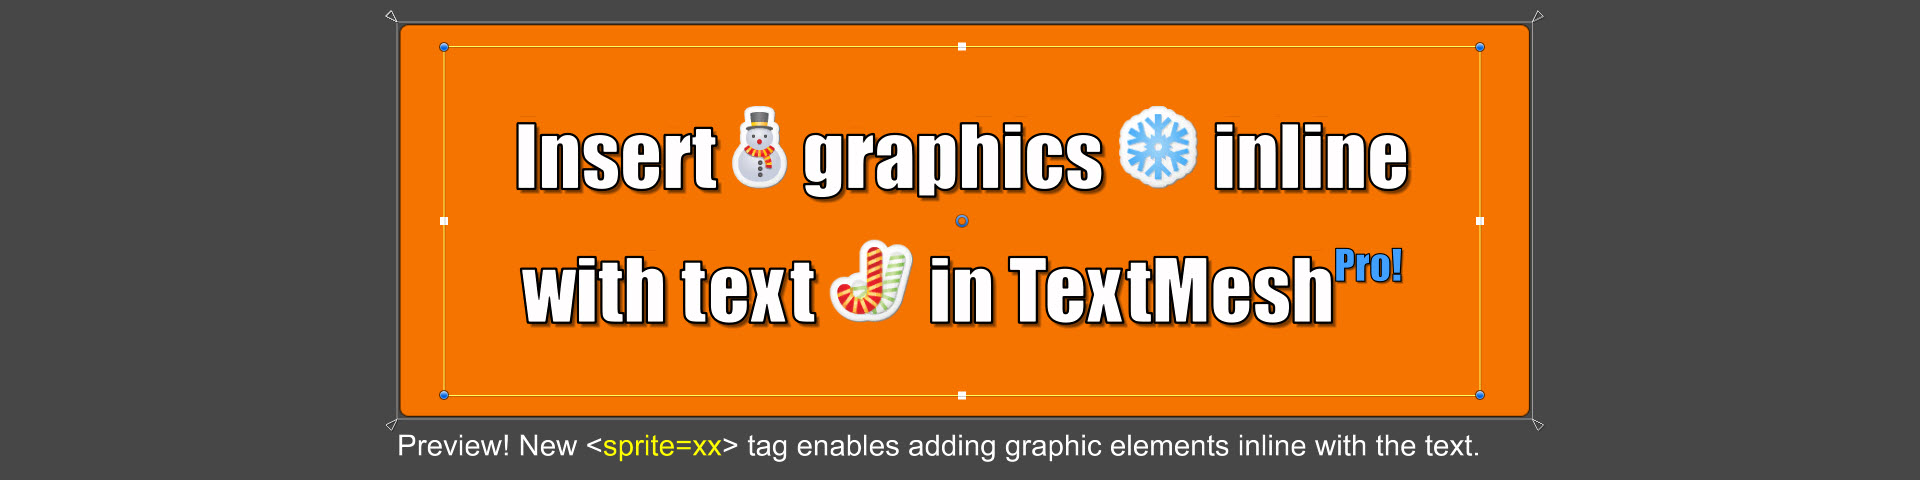 Digital Native Studios – Text Mesh Pro – This is the website for